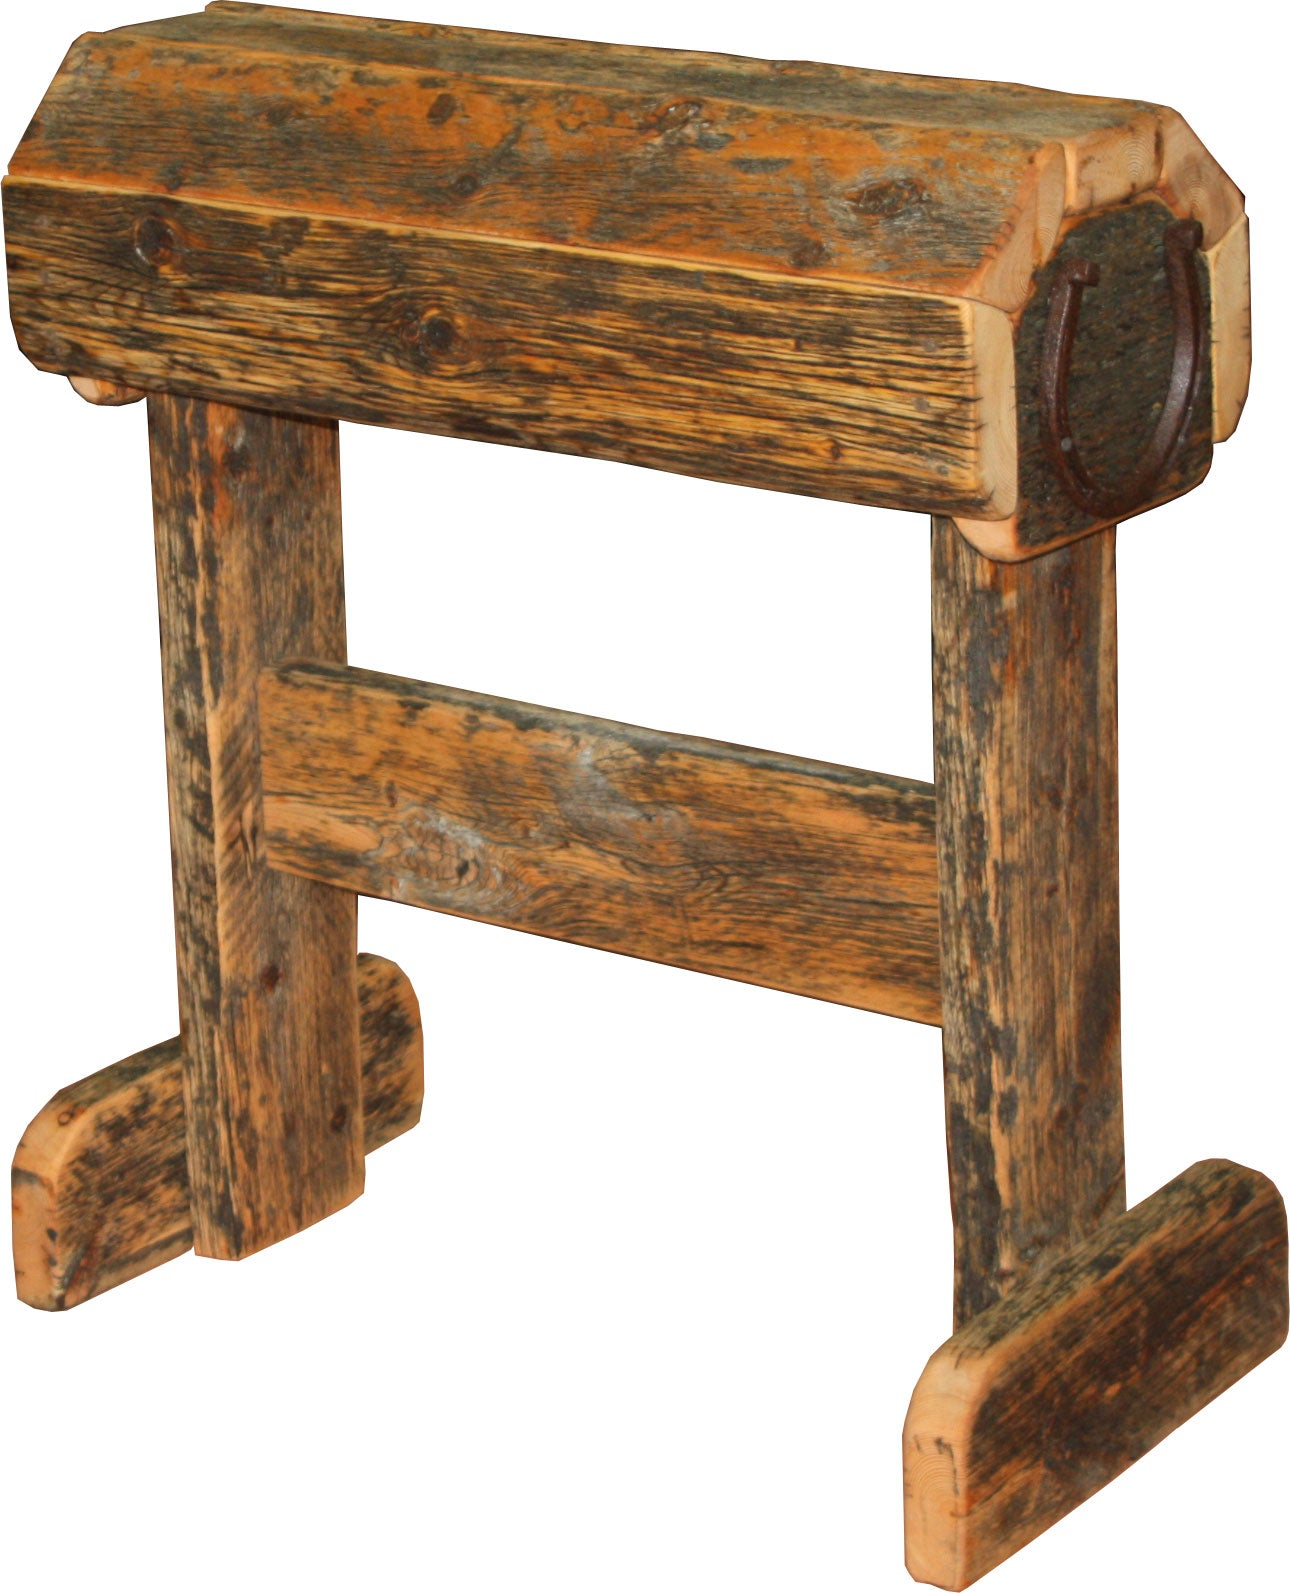 Barnwood Saddle Stand